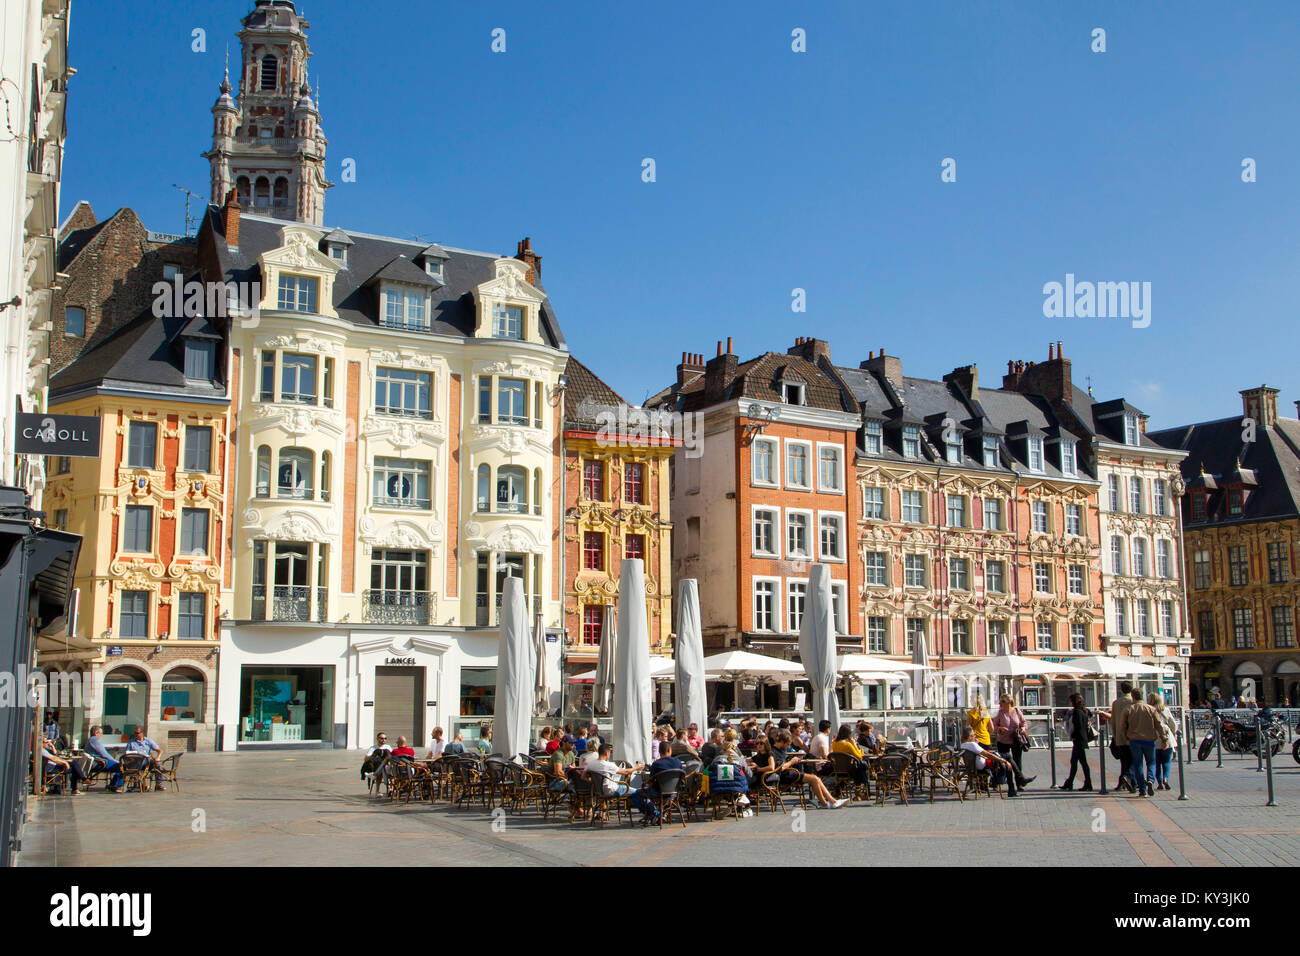 ceafce4da47a Old House Lille Stock Photos   Old House Lille Stock Images - Alamy